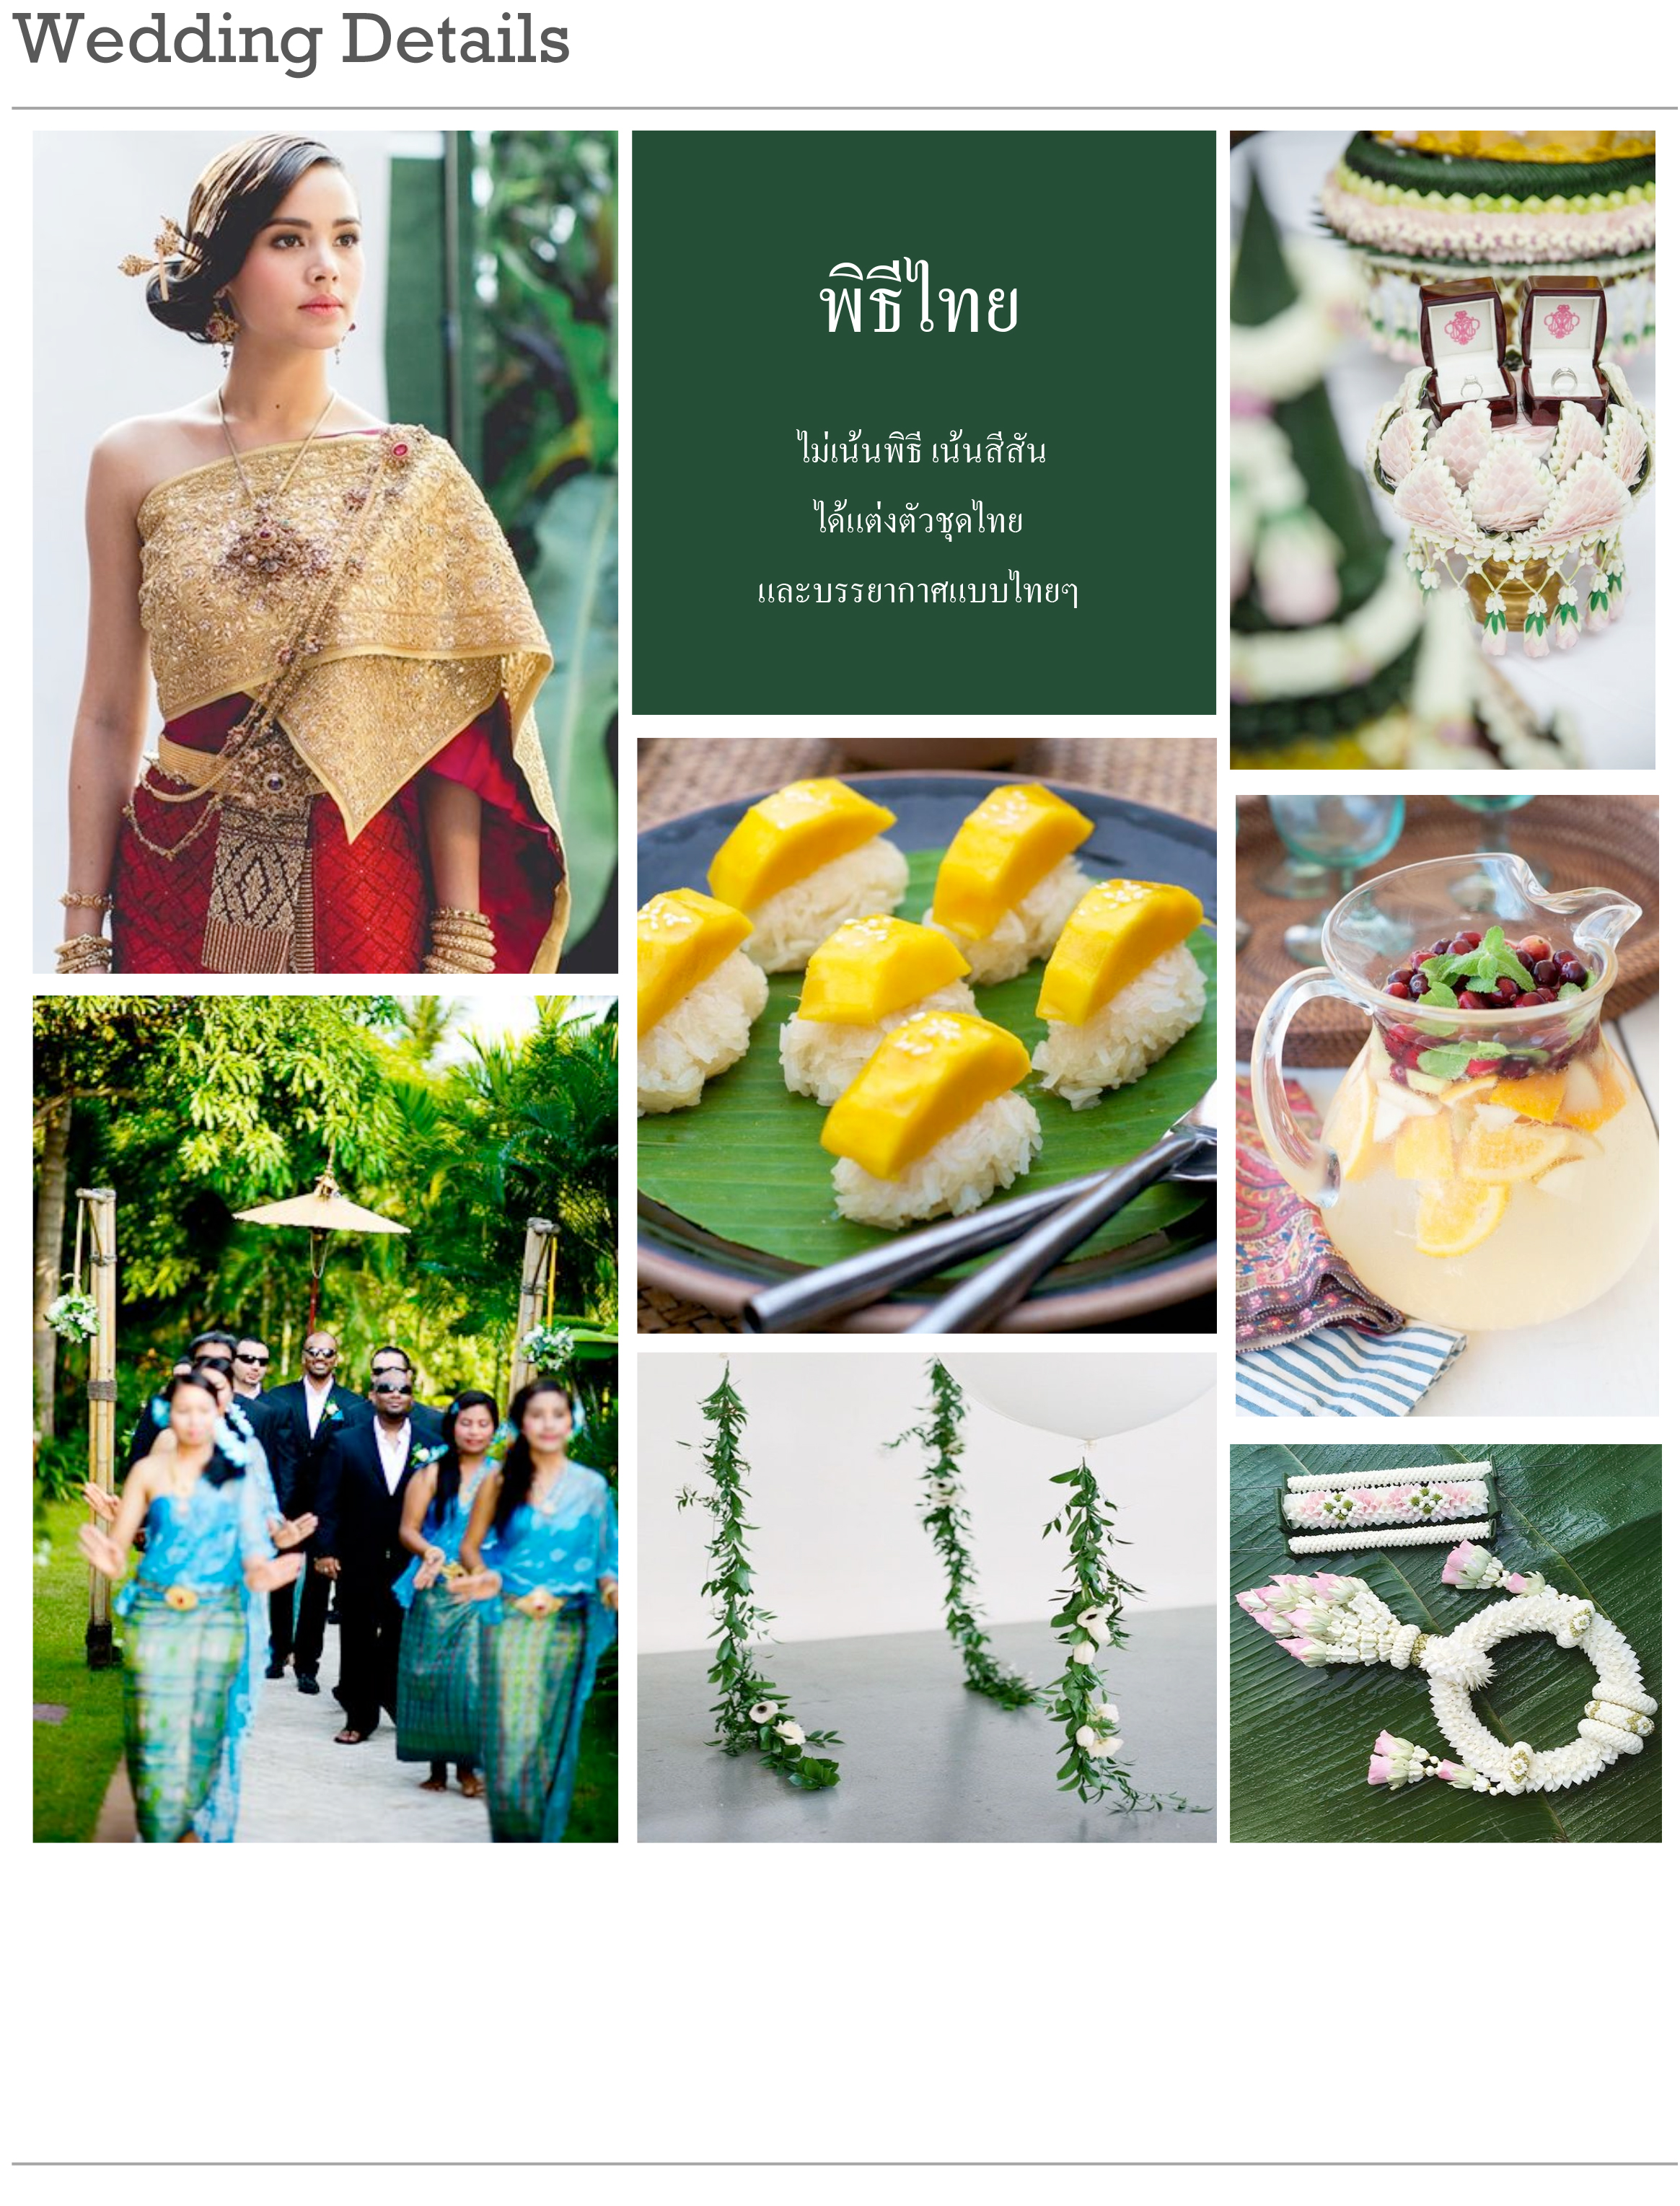 Microsoft Word Wedding Details Centara Grand Hua Hin Doc